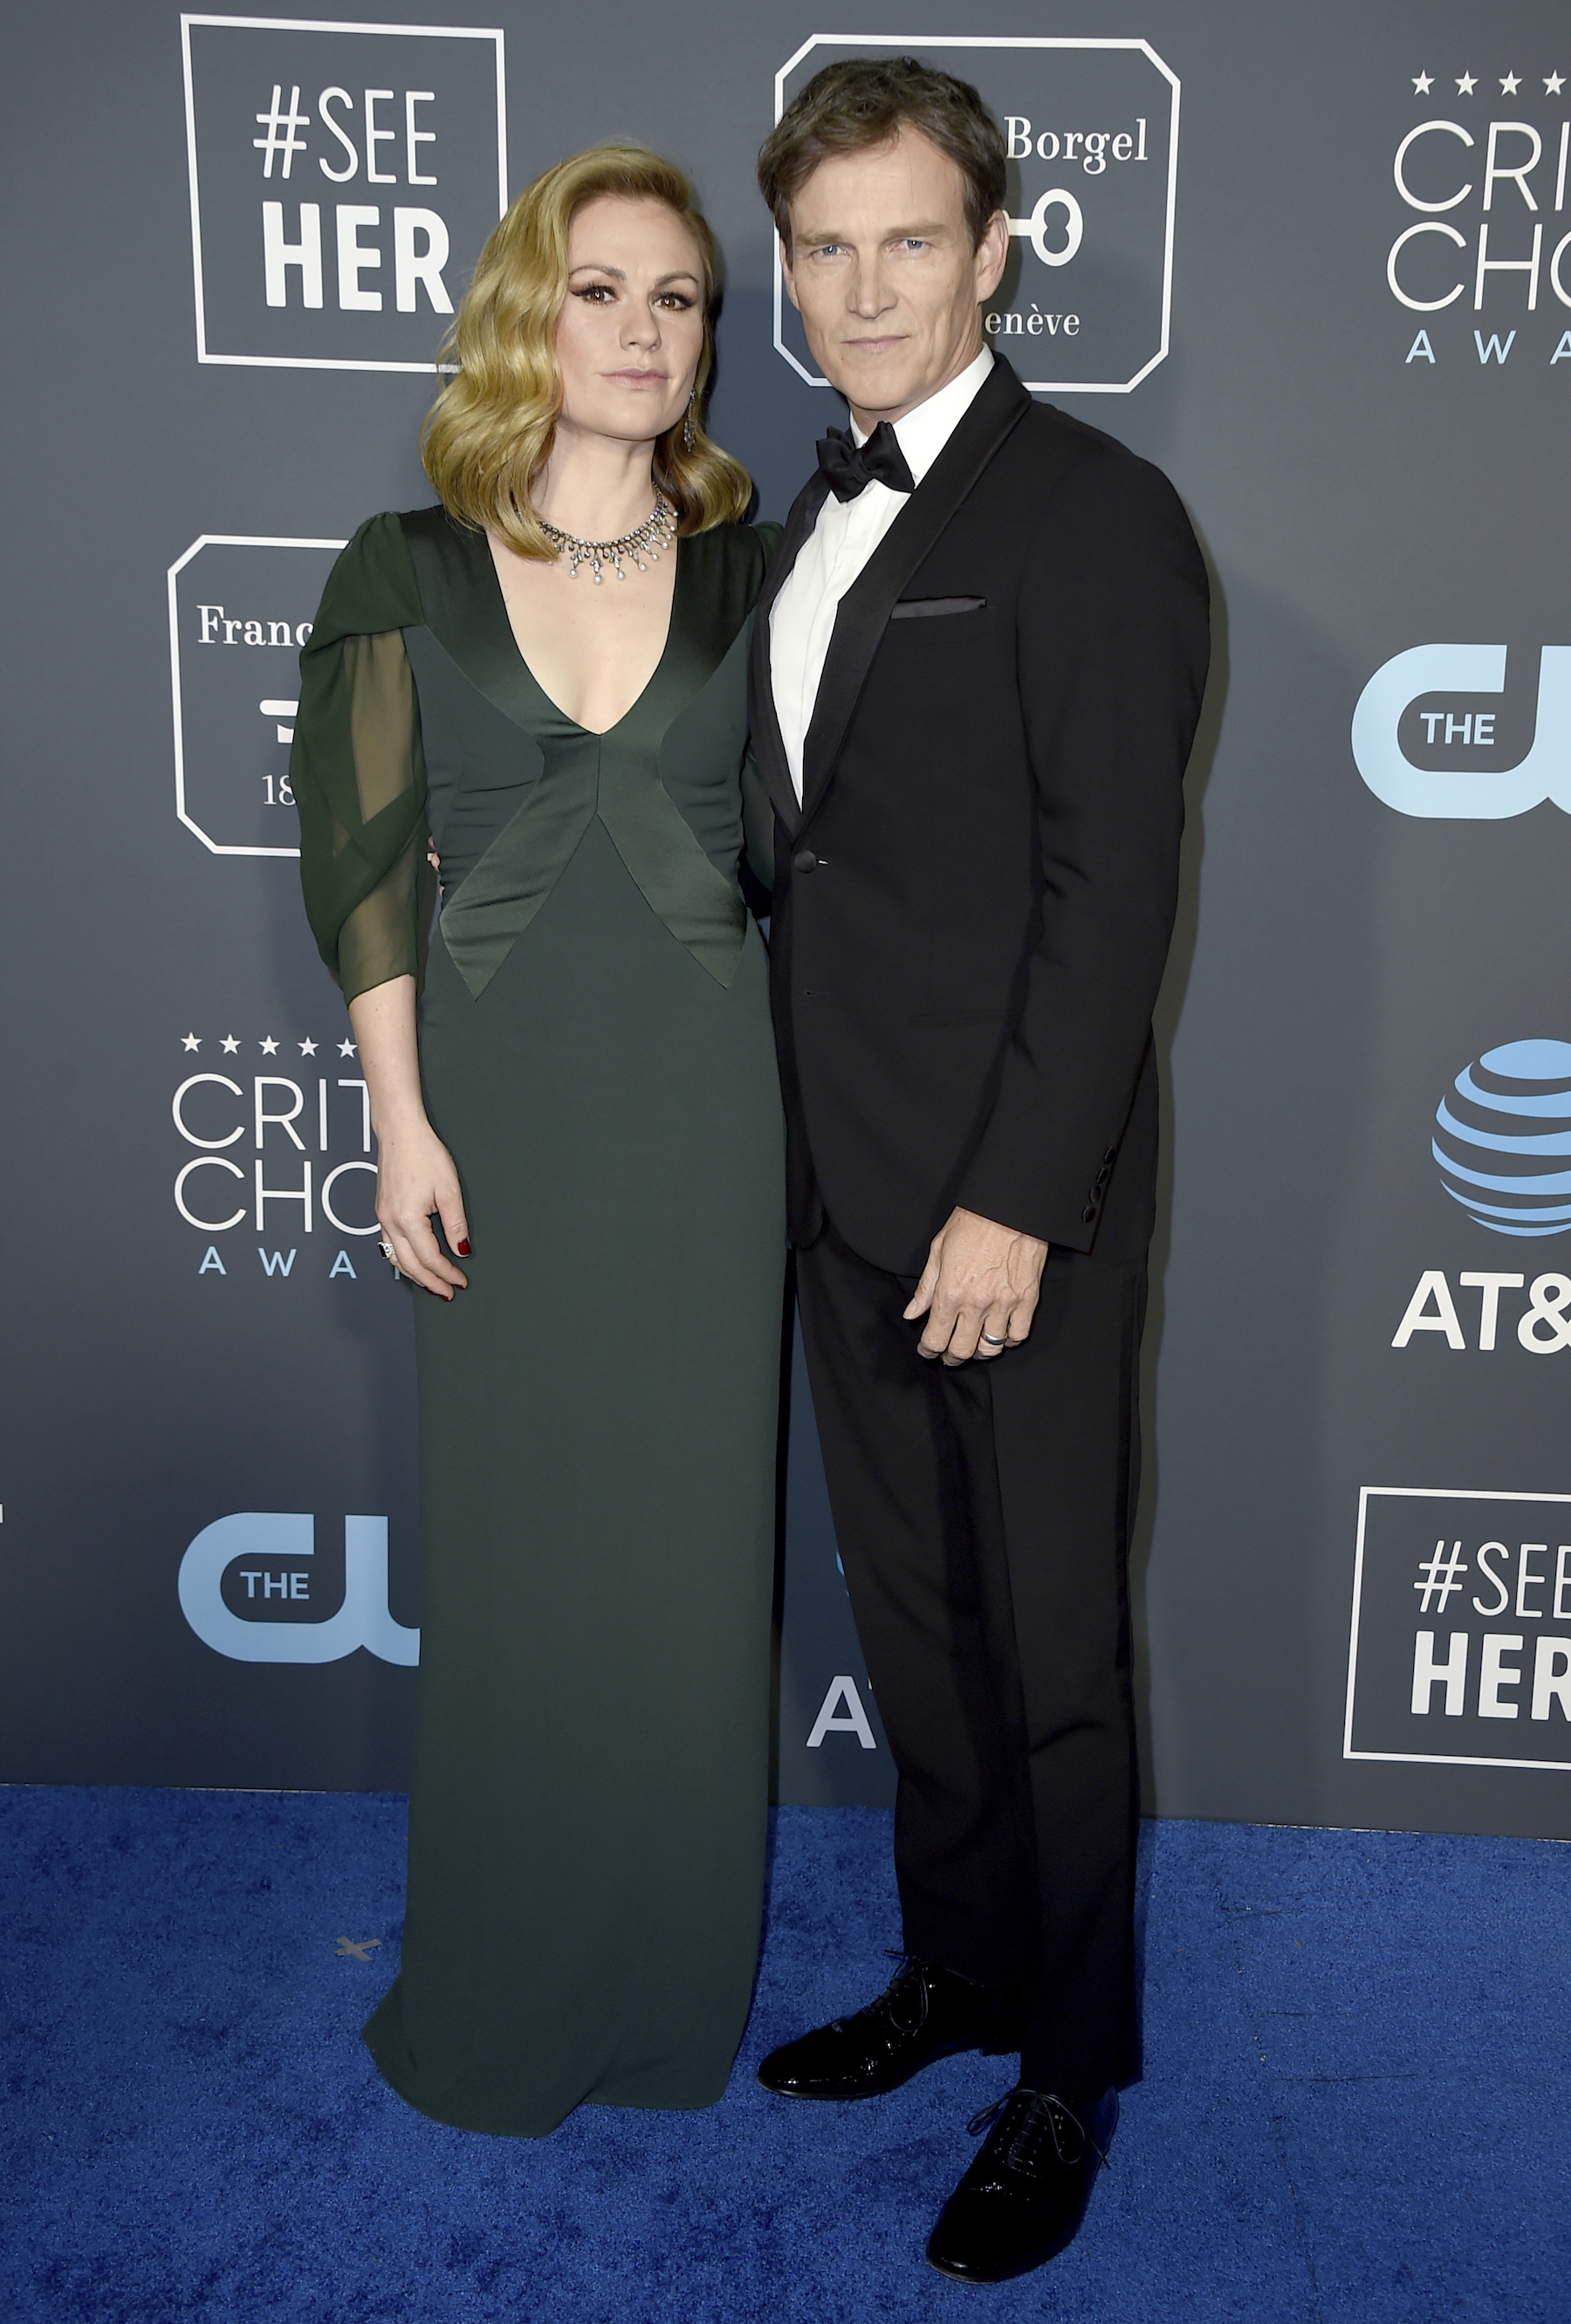 <div class='meta'><div class='origin-logo' data-origin='AP'></div><span class='caption-text' data-credit='Jordan Strauss/Invision/AP'>Anna Paquin, left, and Stephen Moyer arrive at the 24th annual Critics' Choice Awards on Sunday, Jan. 13, 2019, at the Barker Hangar in Santa Monica, Calif.</span></div>